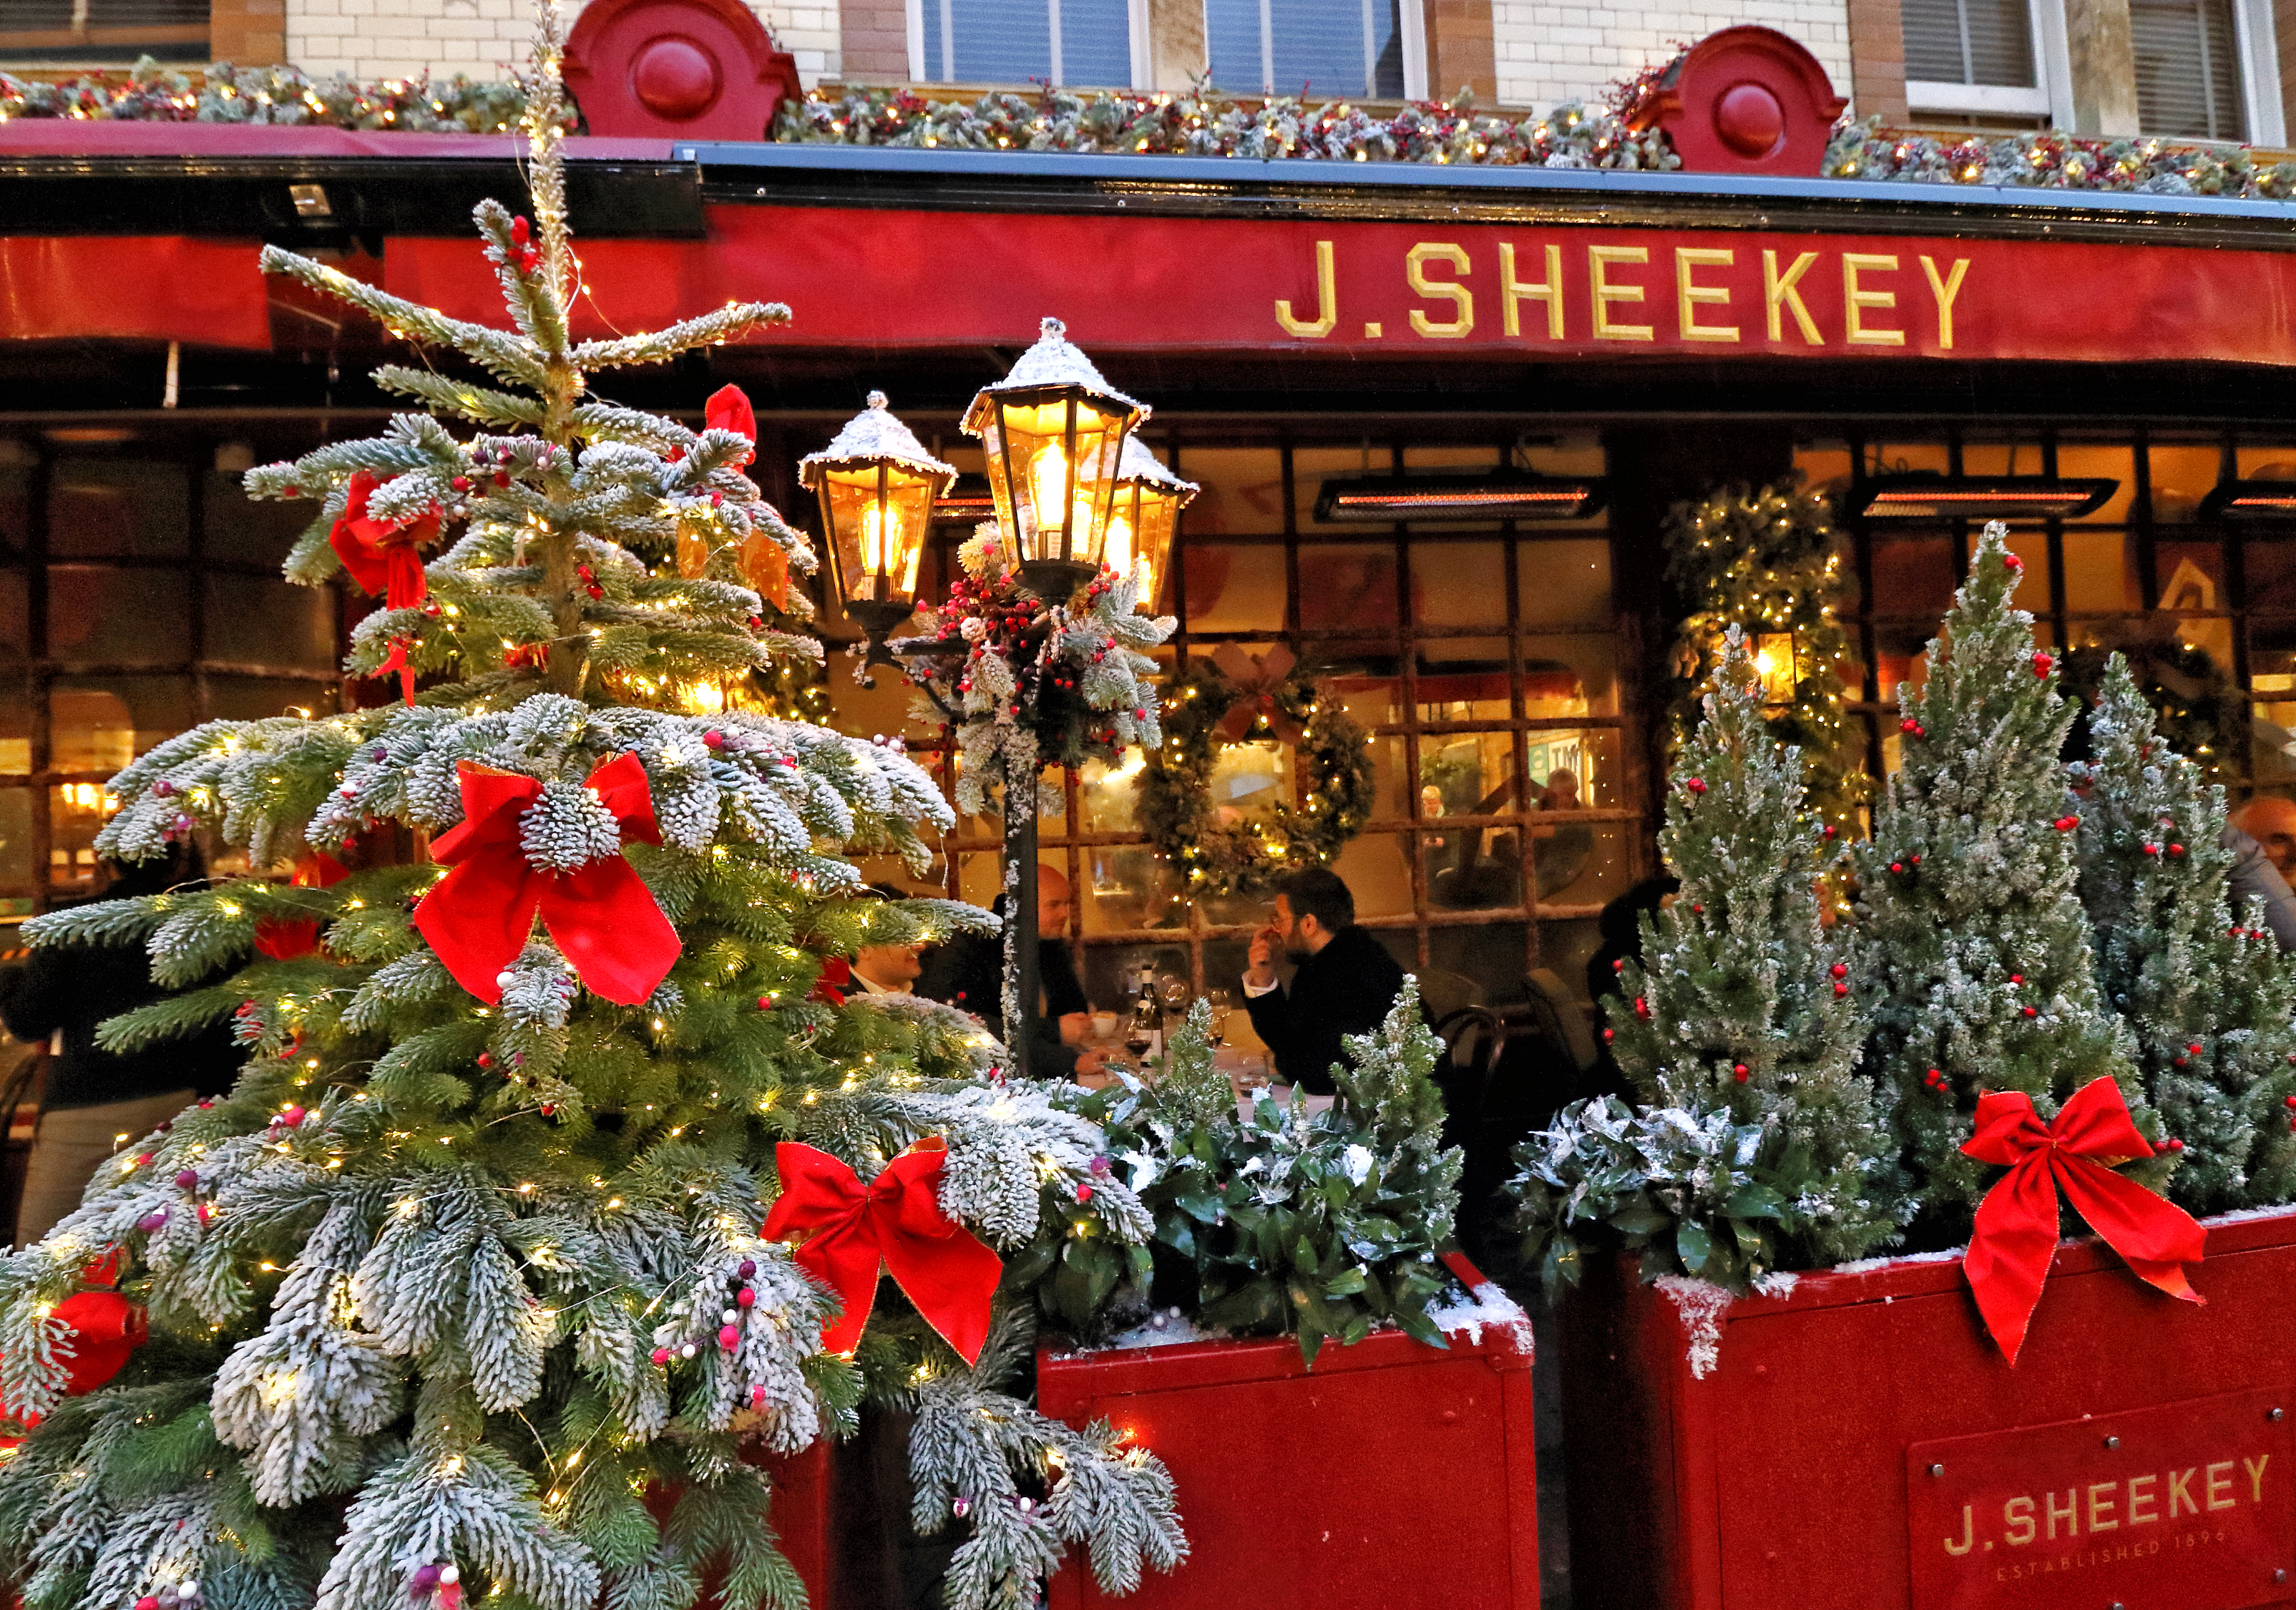 LONDON, UNITED KINGDOM - 2020/12/03: Dickensian theme to the decorations outside J Sheekey restaurant. Christmas Decorations around London as most retail and hospitality venues are open and looking forward to the rest of the festive season. (Photo by Keith Mayhew/SOPA Images/LightRocket via Getty Images)